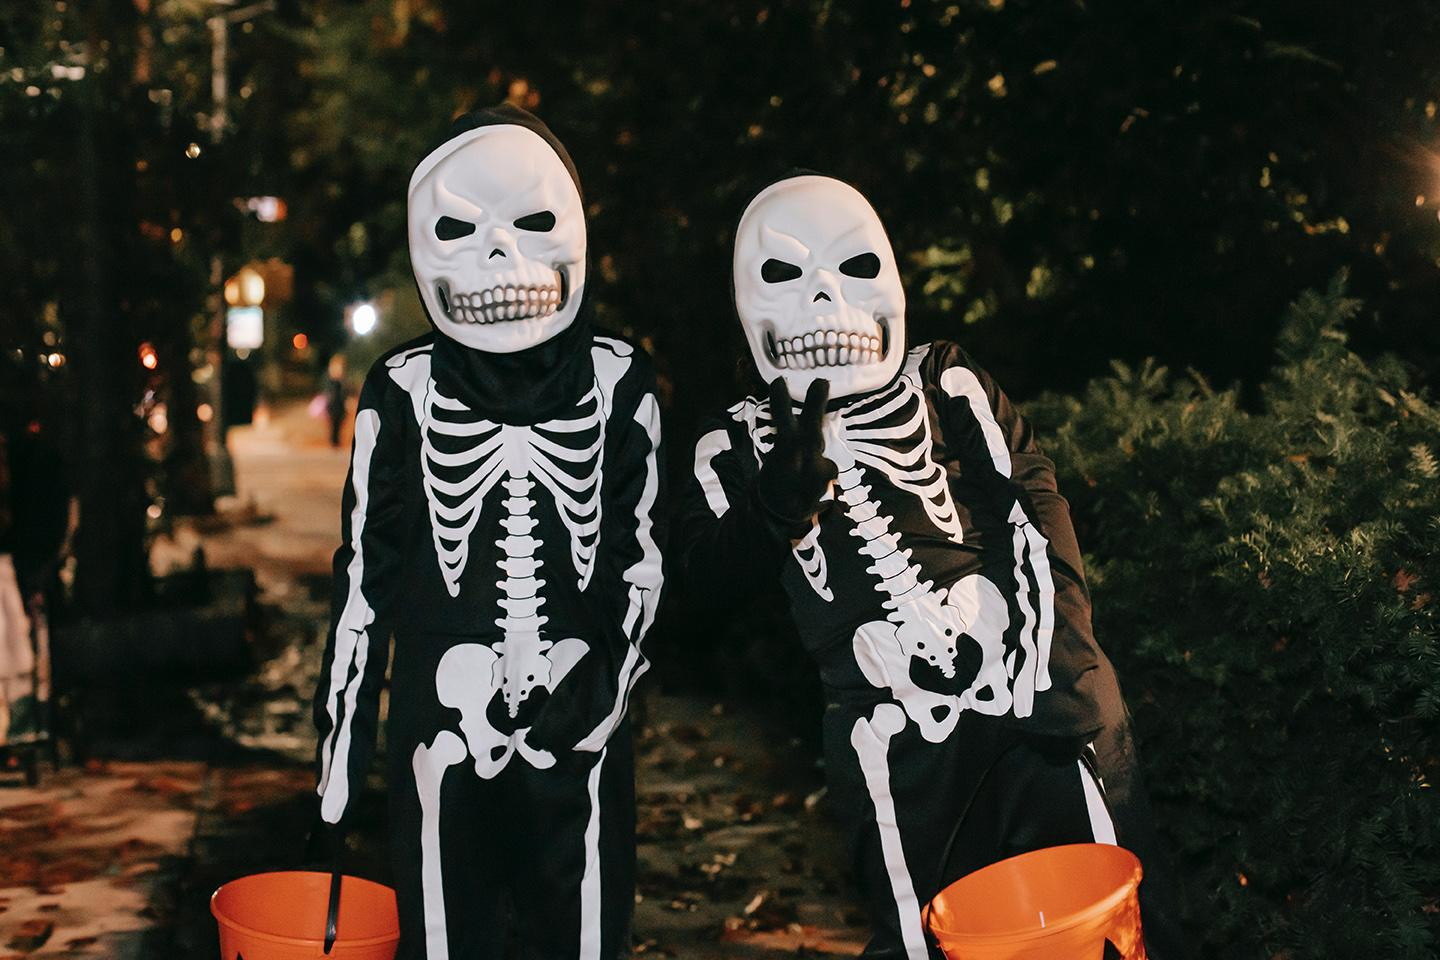 two children dressed up as skeletons for Halloween pose for a photo